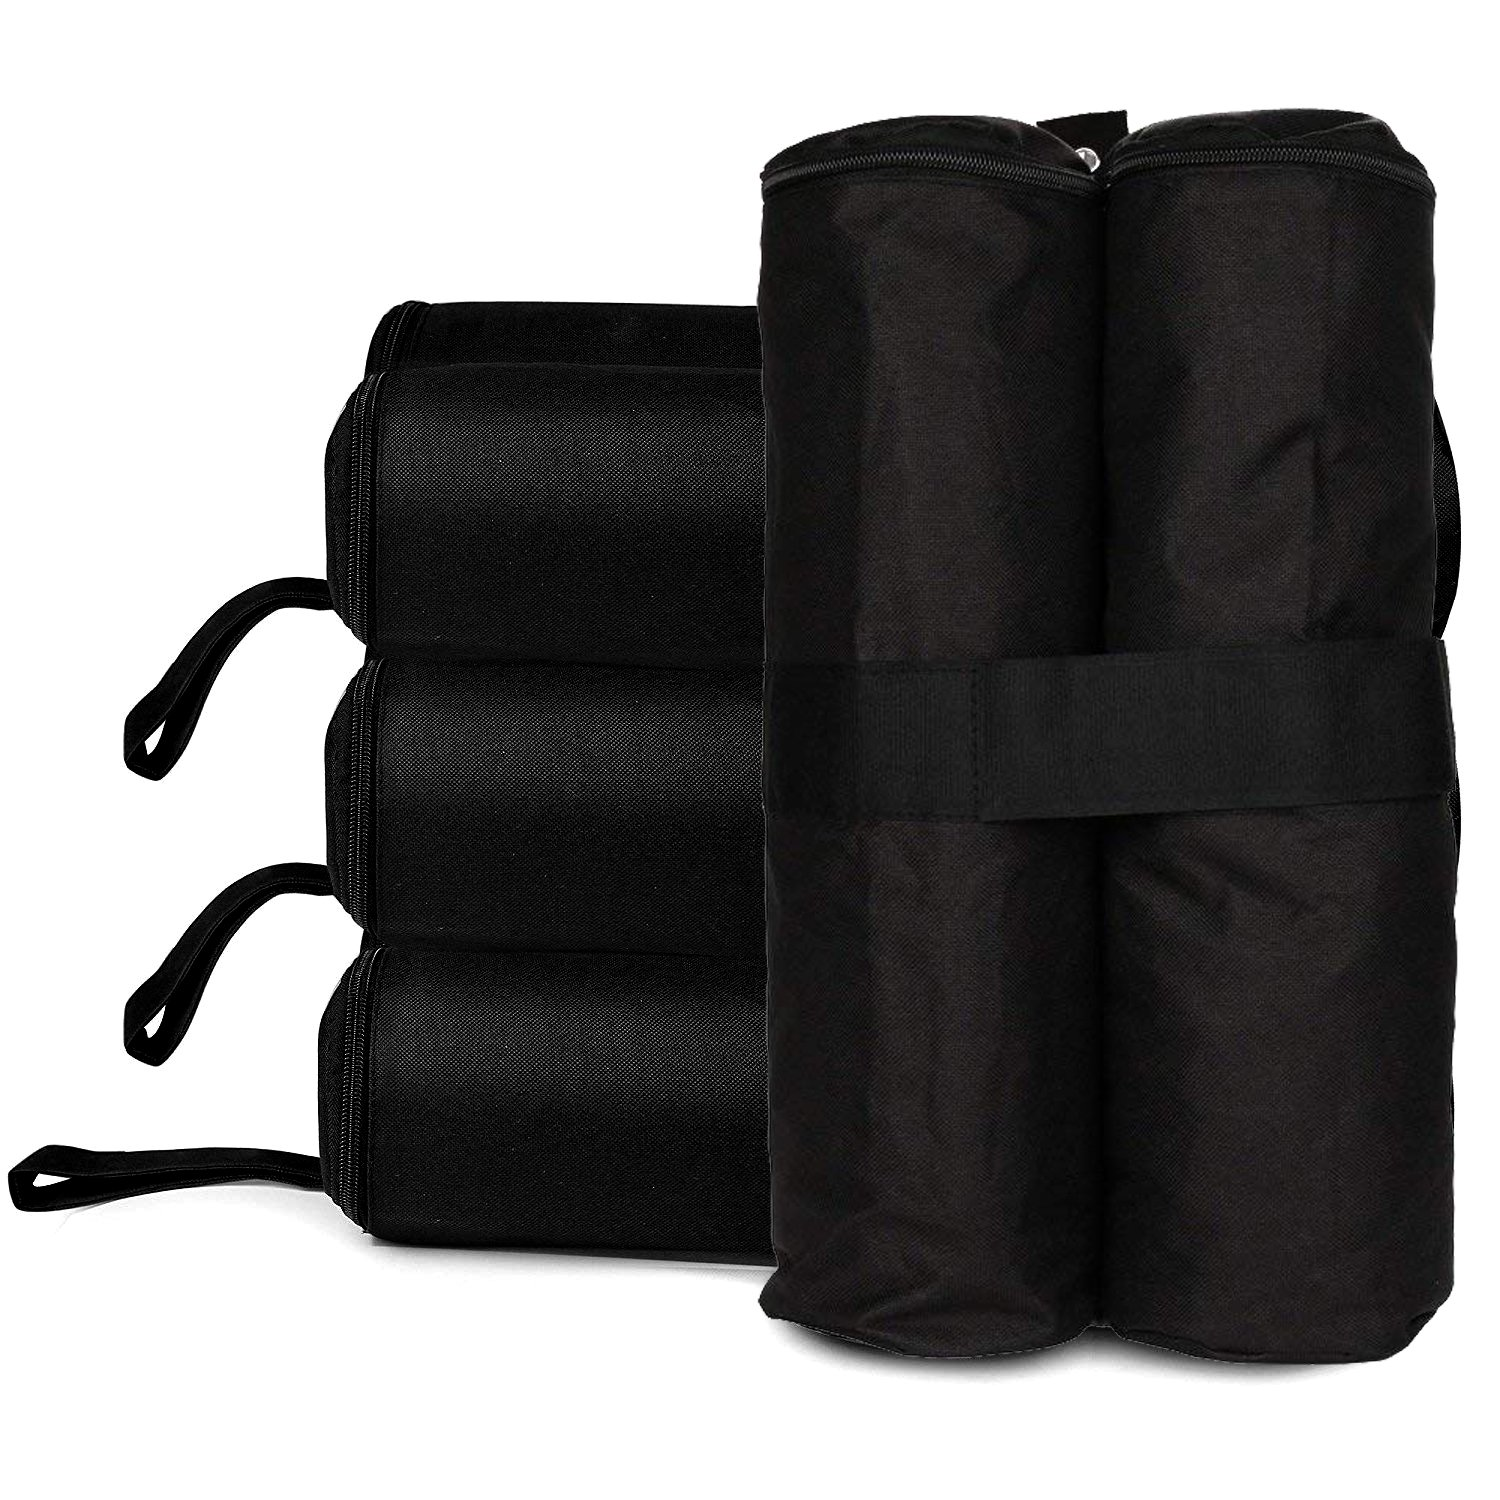 RONGT 60 Lbs Canopy Tent Weight Bags, Water-Proof Pop Up Canopy Tent Sand Bags for Instant Outdoor Sun Shelter Canopy Legs (Four Set)